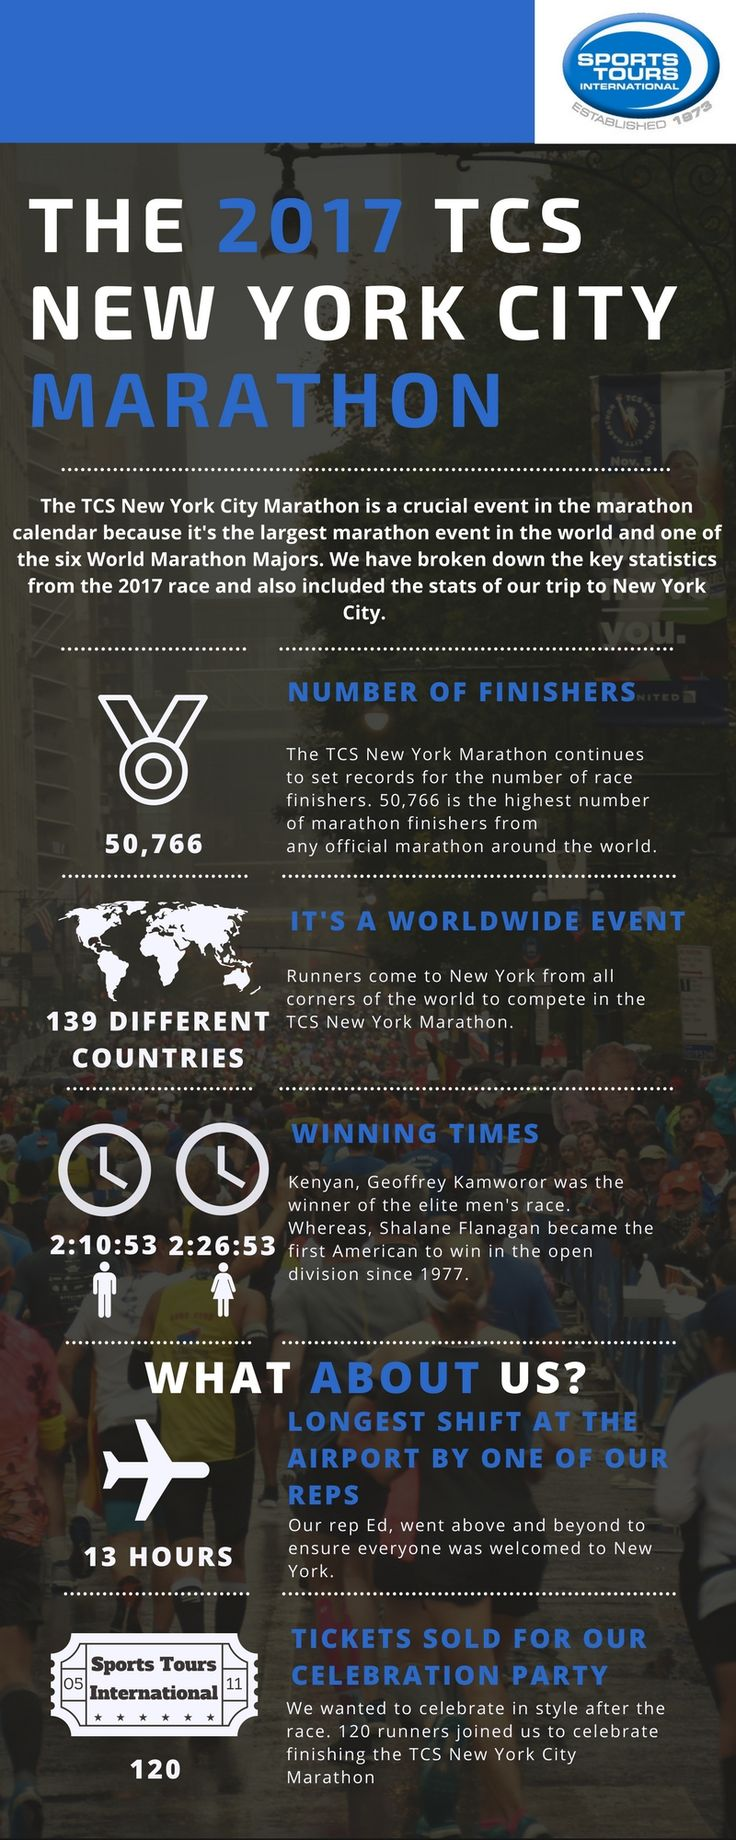 Our stats from the 2017 TCS New York Marathon